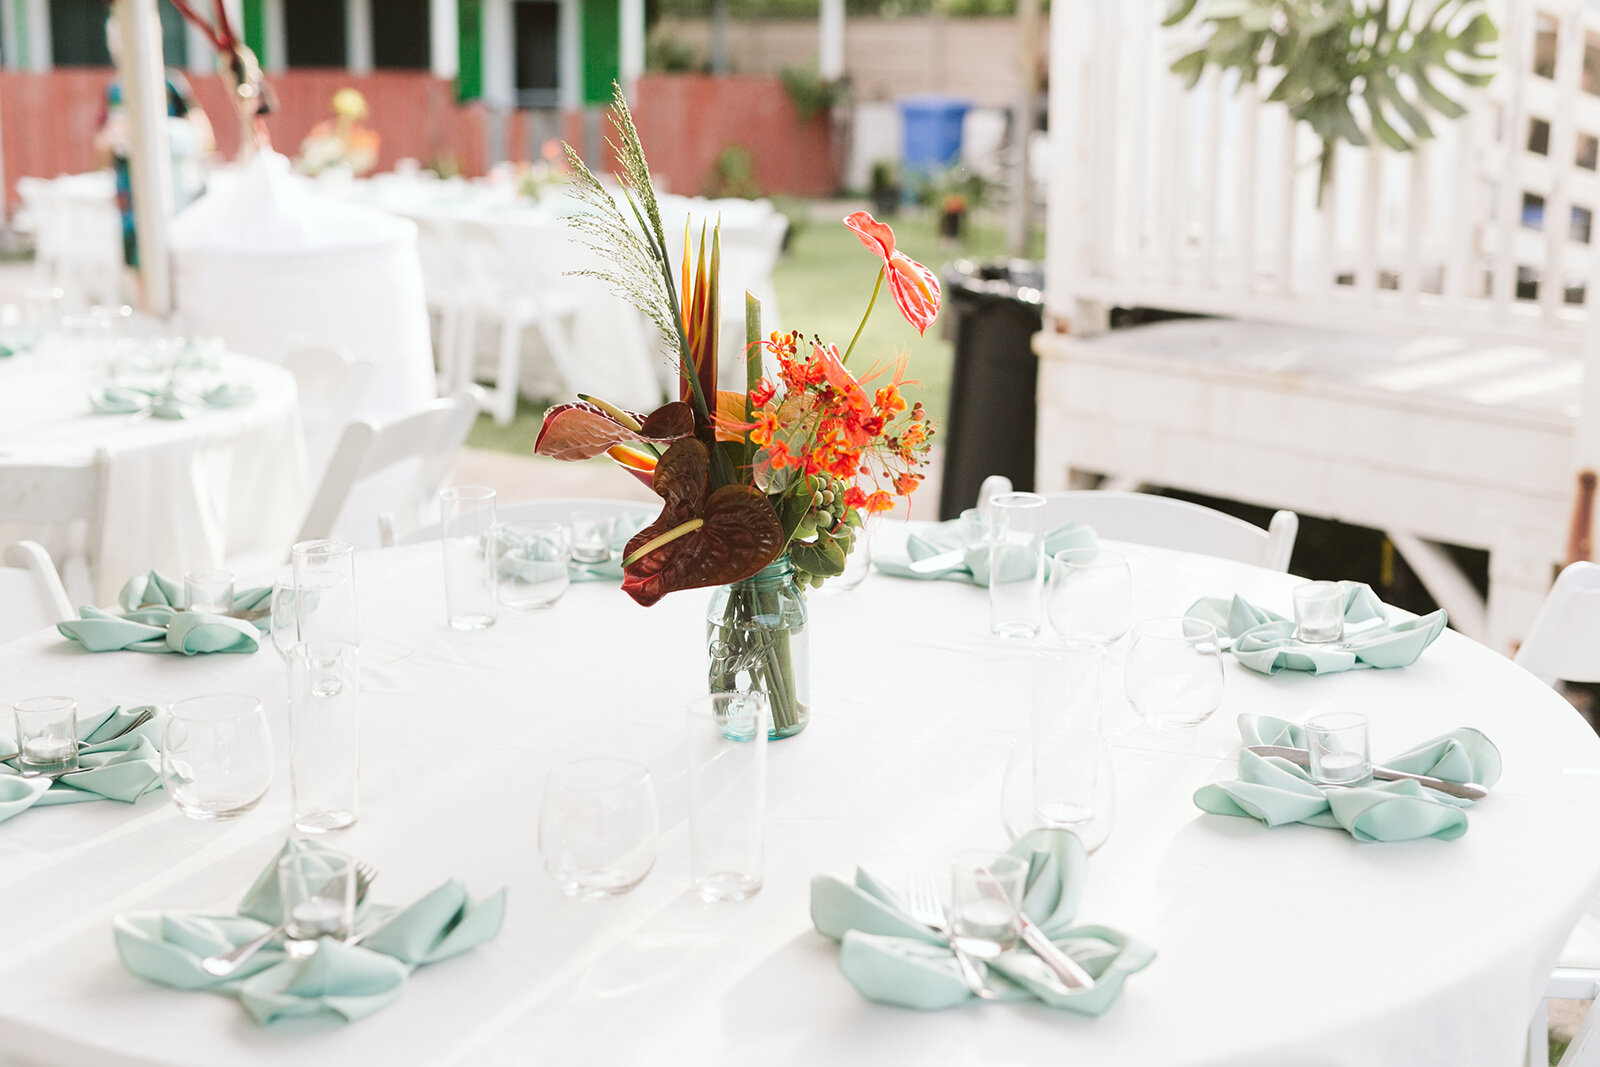 Mokuleia-North-Shore-Hawaii-Beach-House-Wedding-reception-details-floral-centerpieces